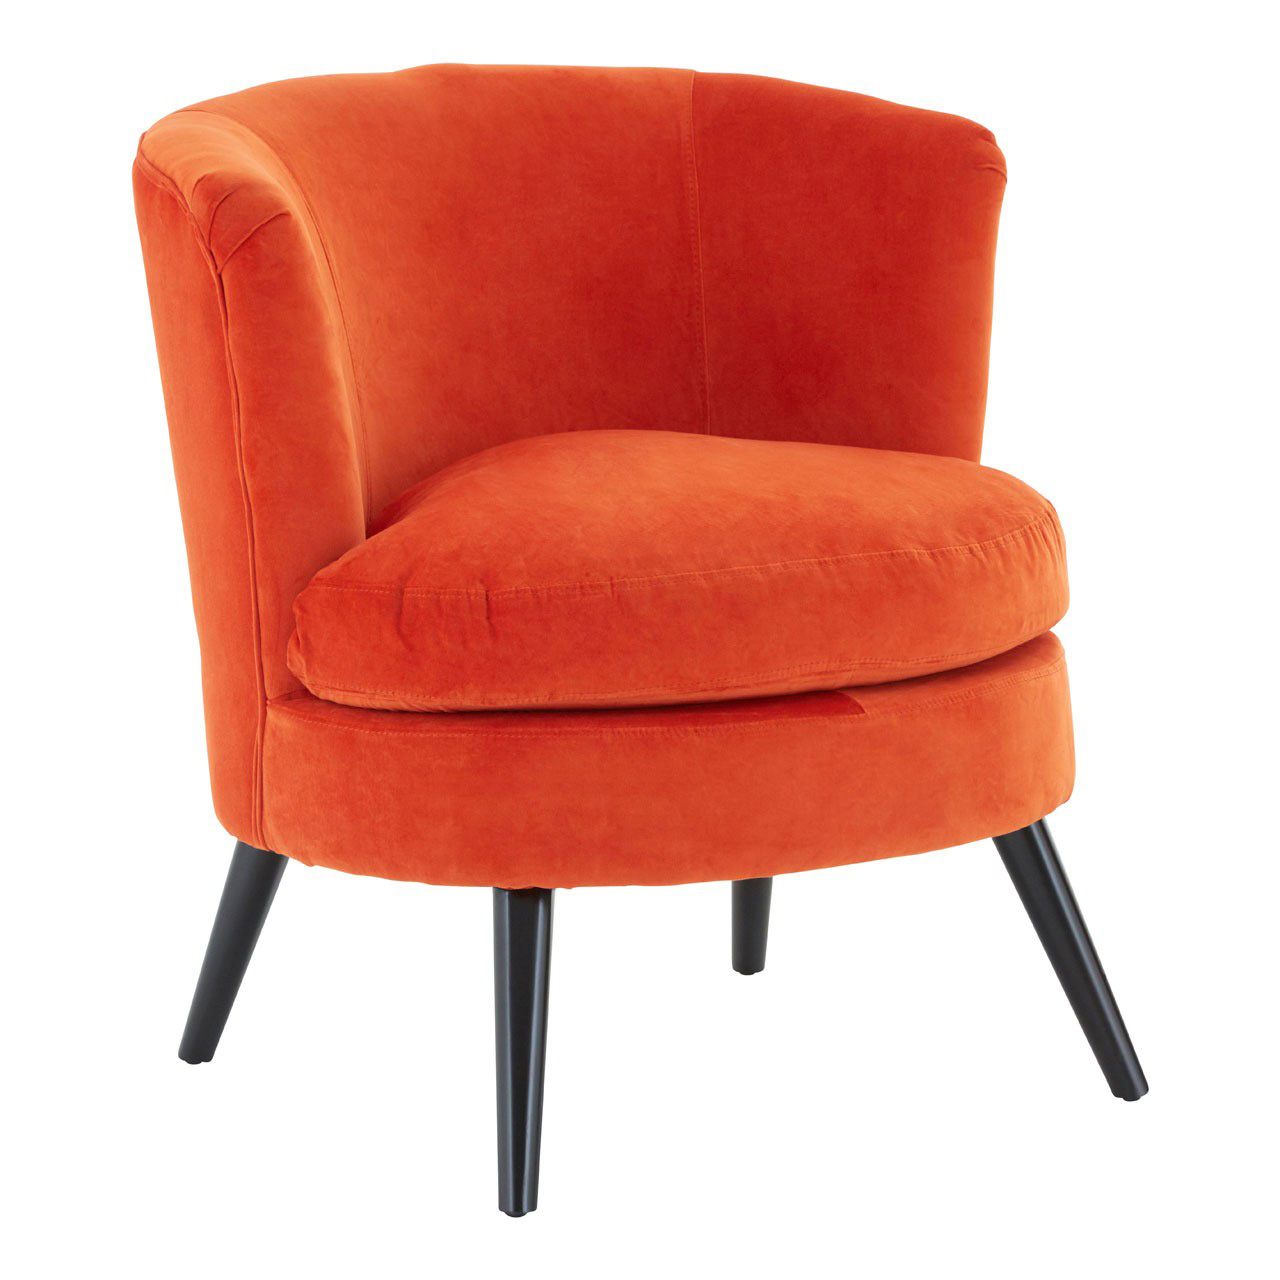 Orange Plush Velvet Round Armchair